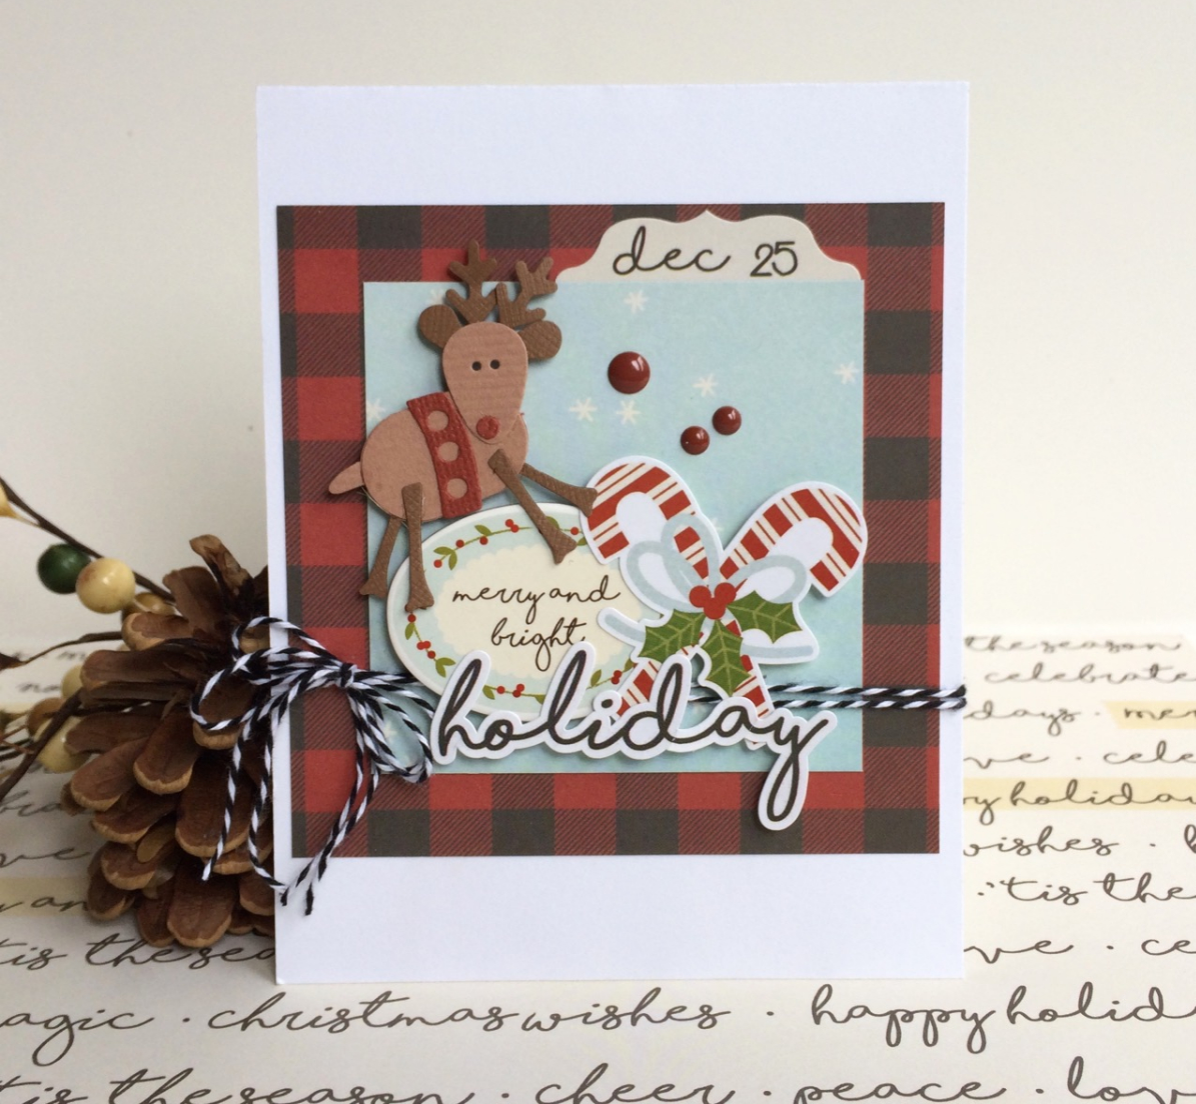 Scrapbook paper companies -  Hope Everyone Is Enjoying All The Card Licious Inspiration Today On The Blog For Those That Are Gearing Up For The Assembly Line Holiday Card Making I D